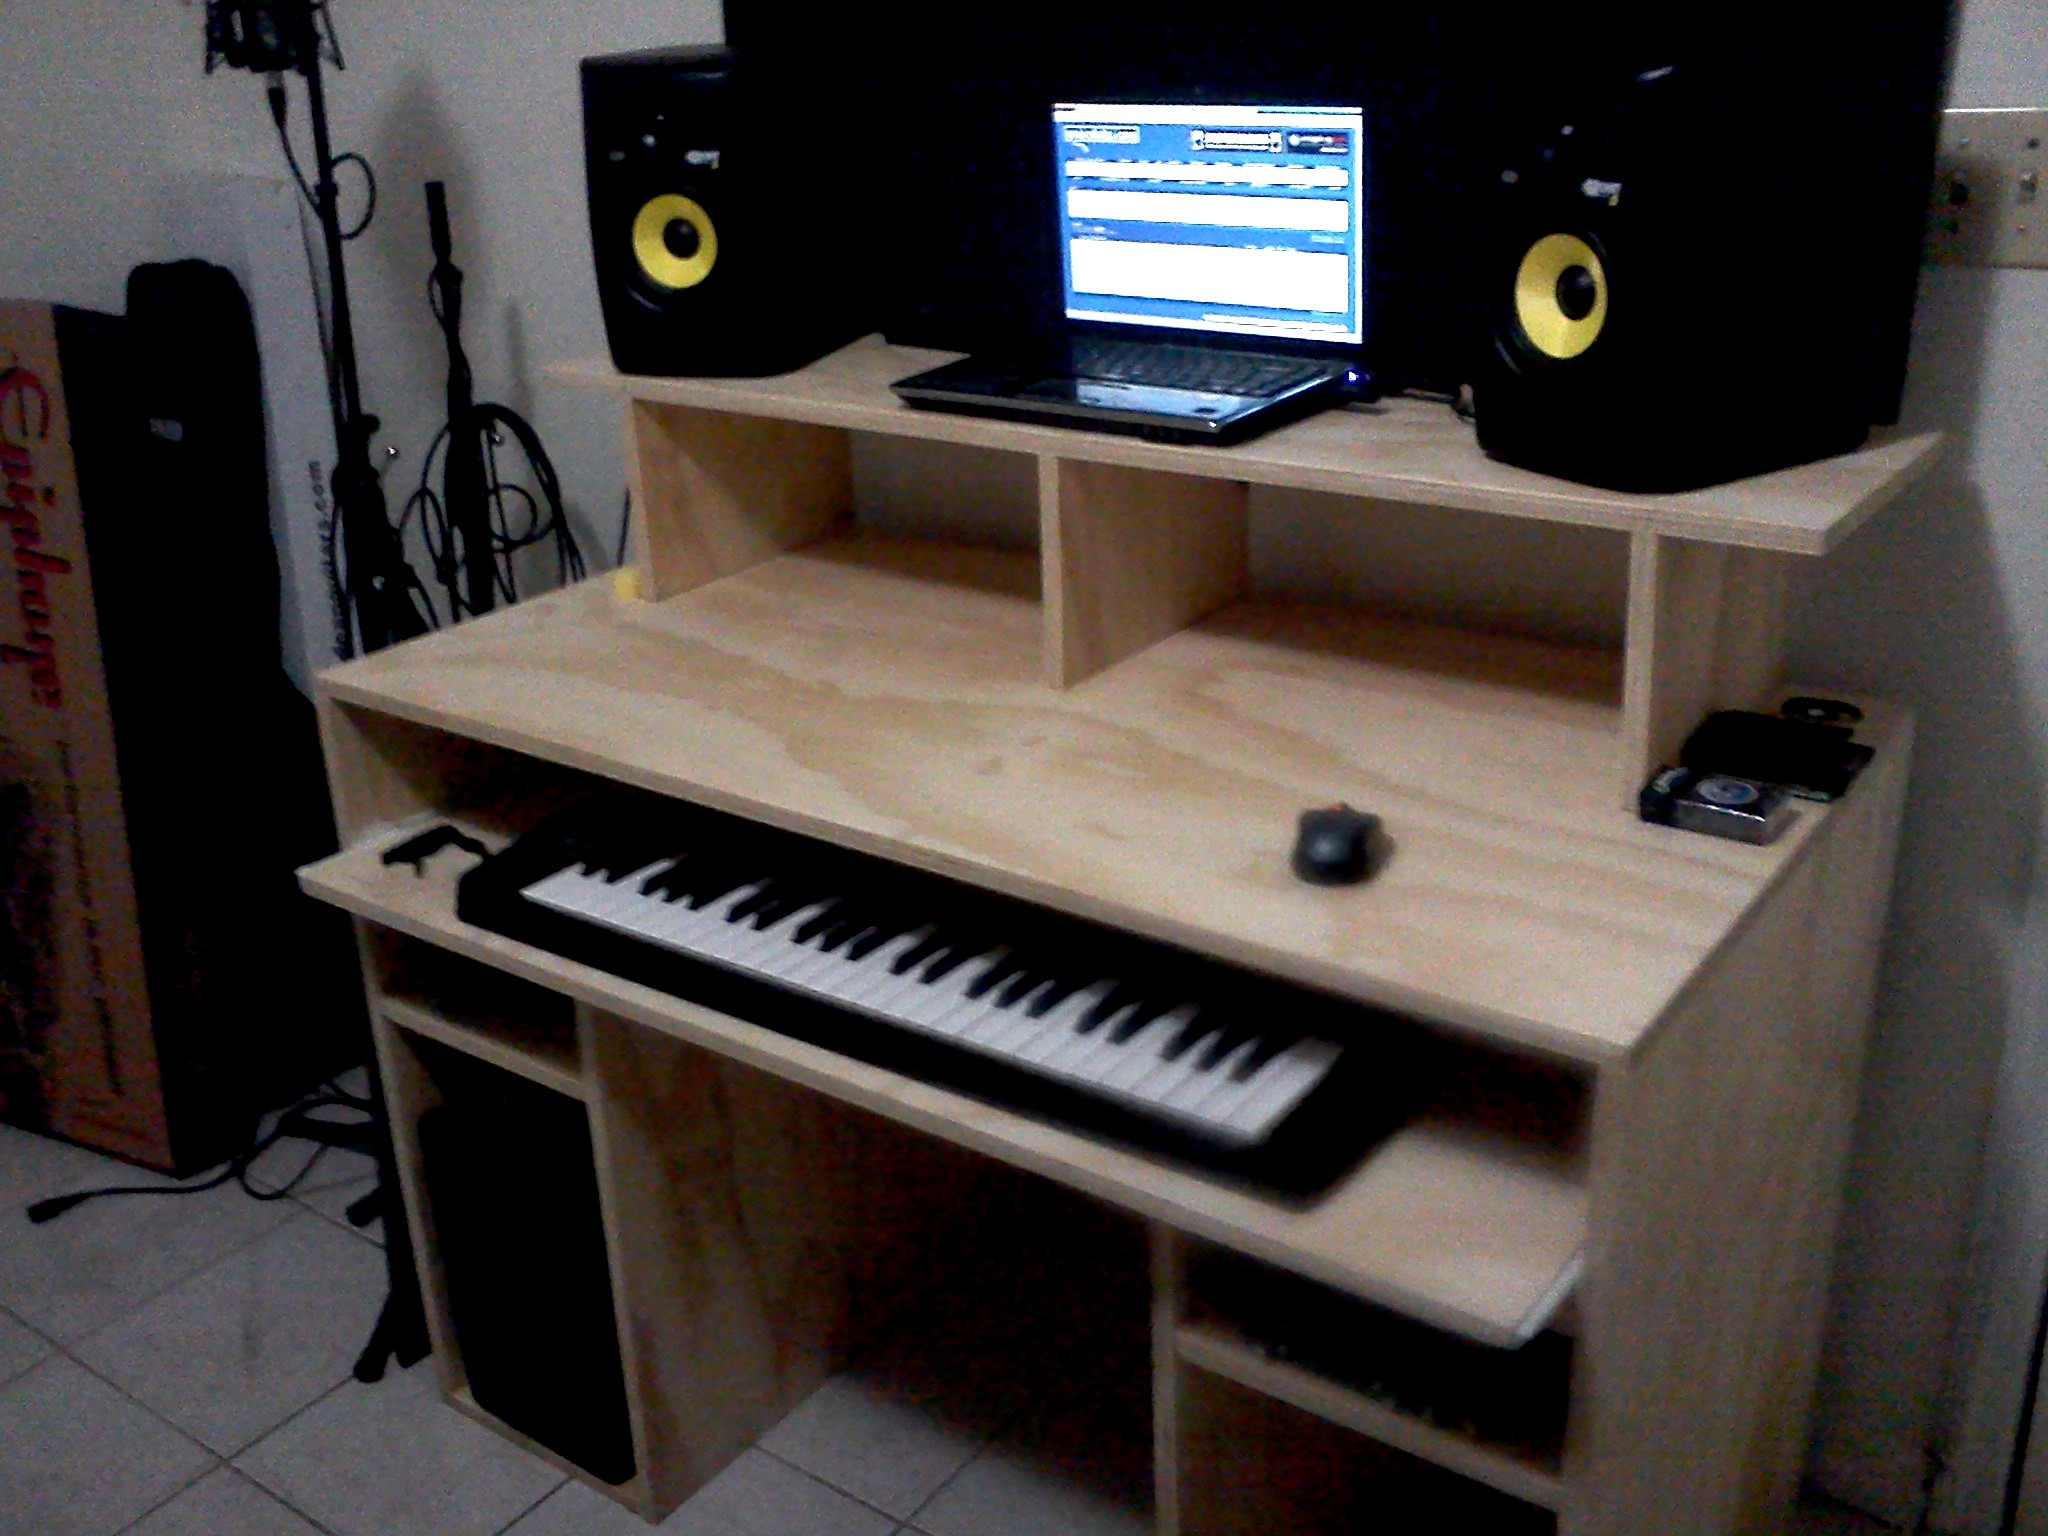 ... enthusiasts, I've just build my Studio Desk and here are some pictures